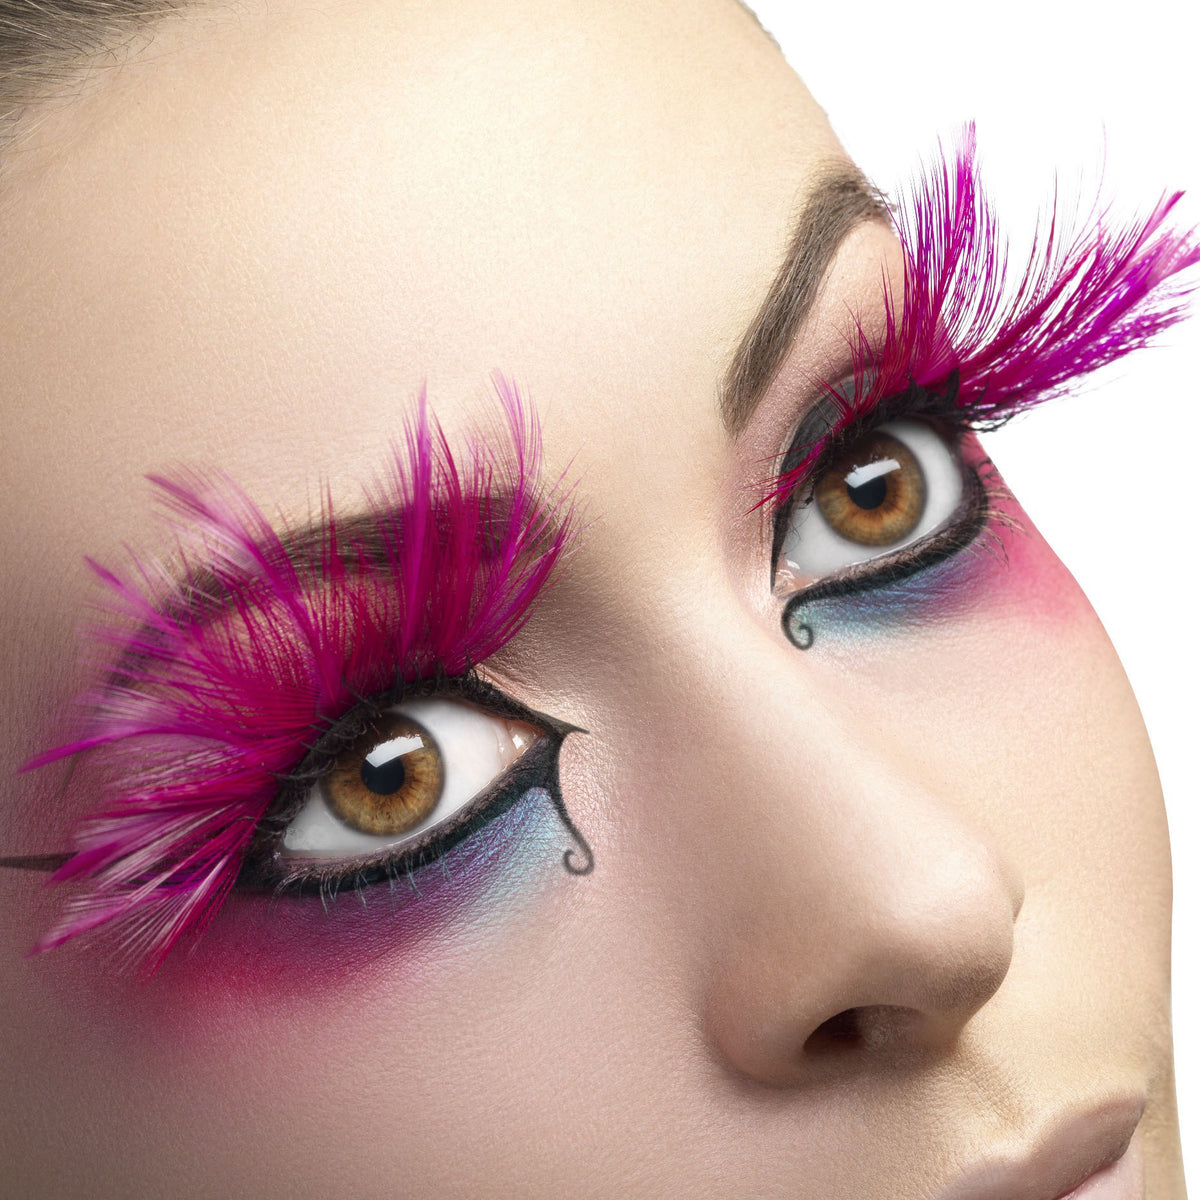 Fever False Eyelashes - Pink Feather Plumes - Red Carpet FX - Professional Makeup